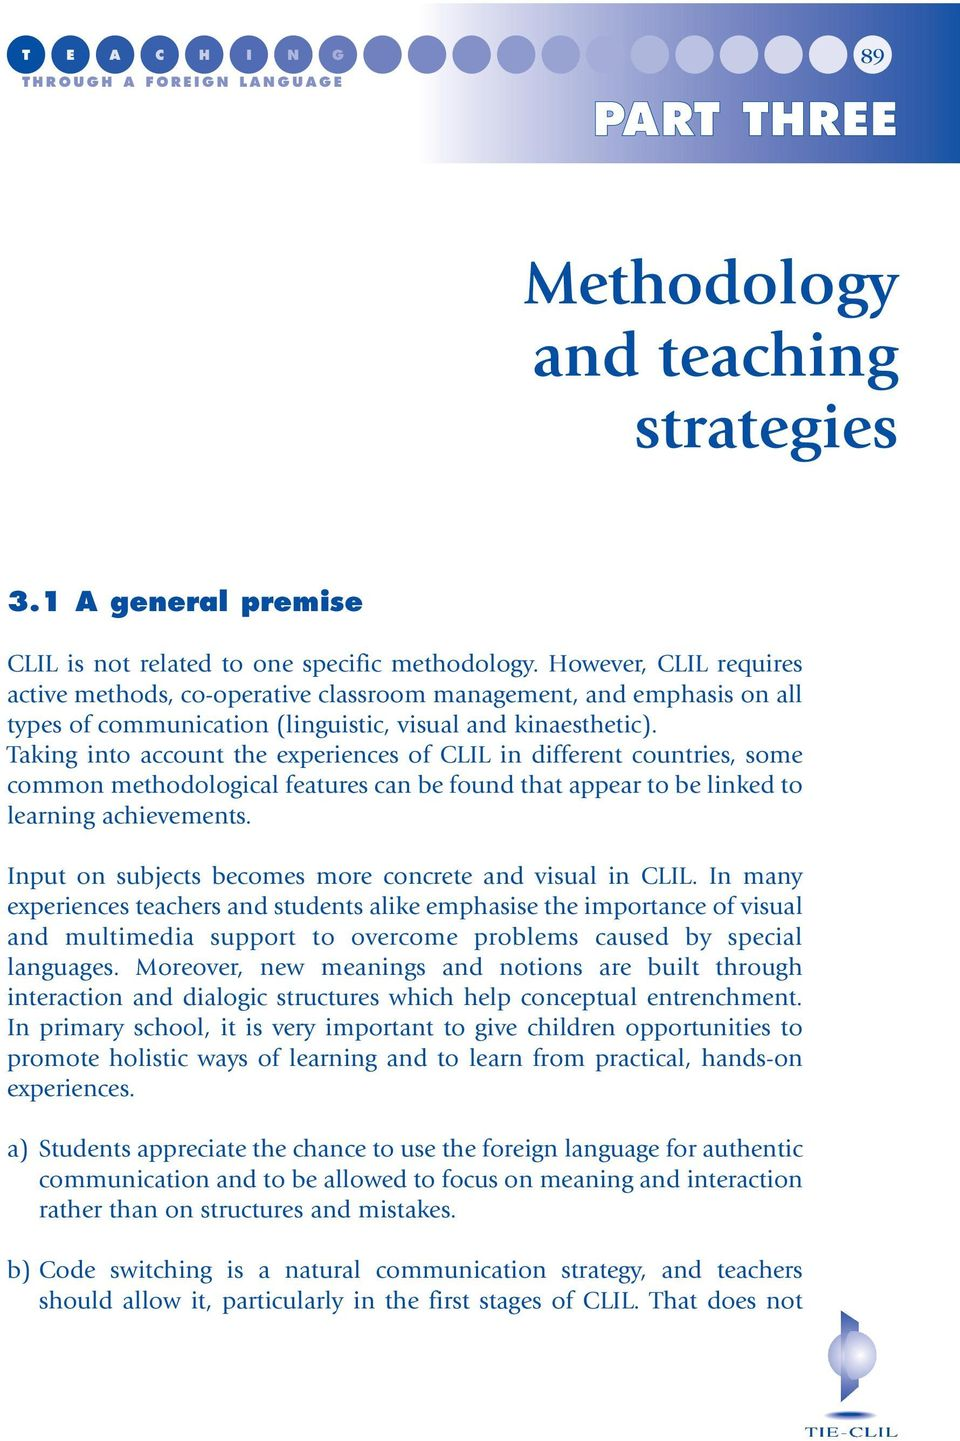 Taking into account the experiences of CLIL in different countries, some common methodological features can be found that appear to be linked to learning achievements.